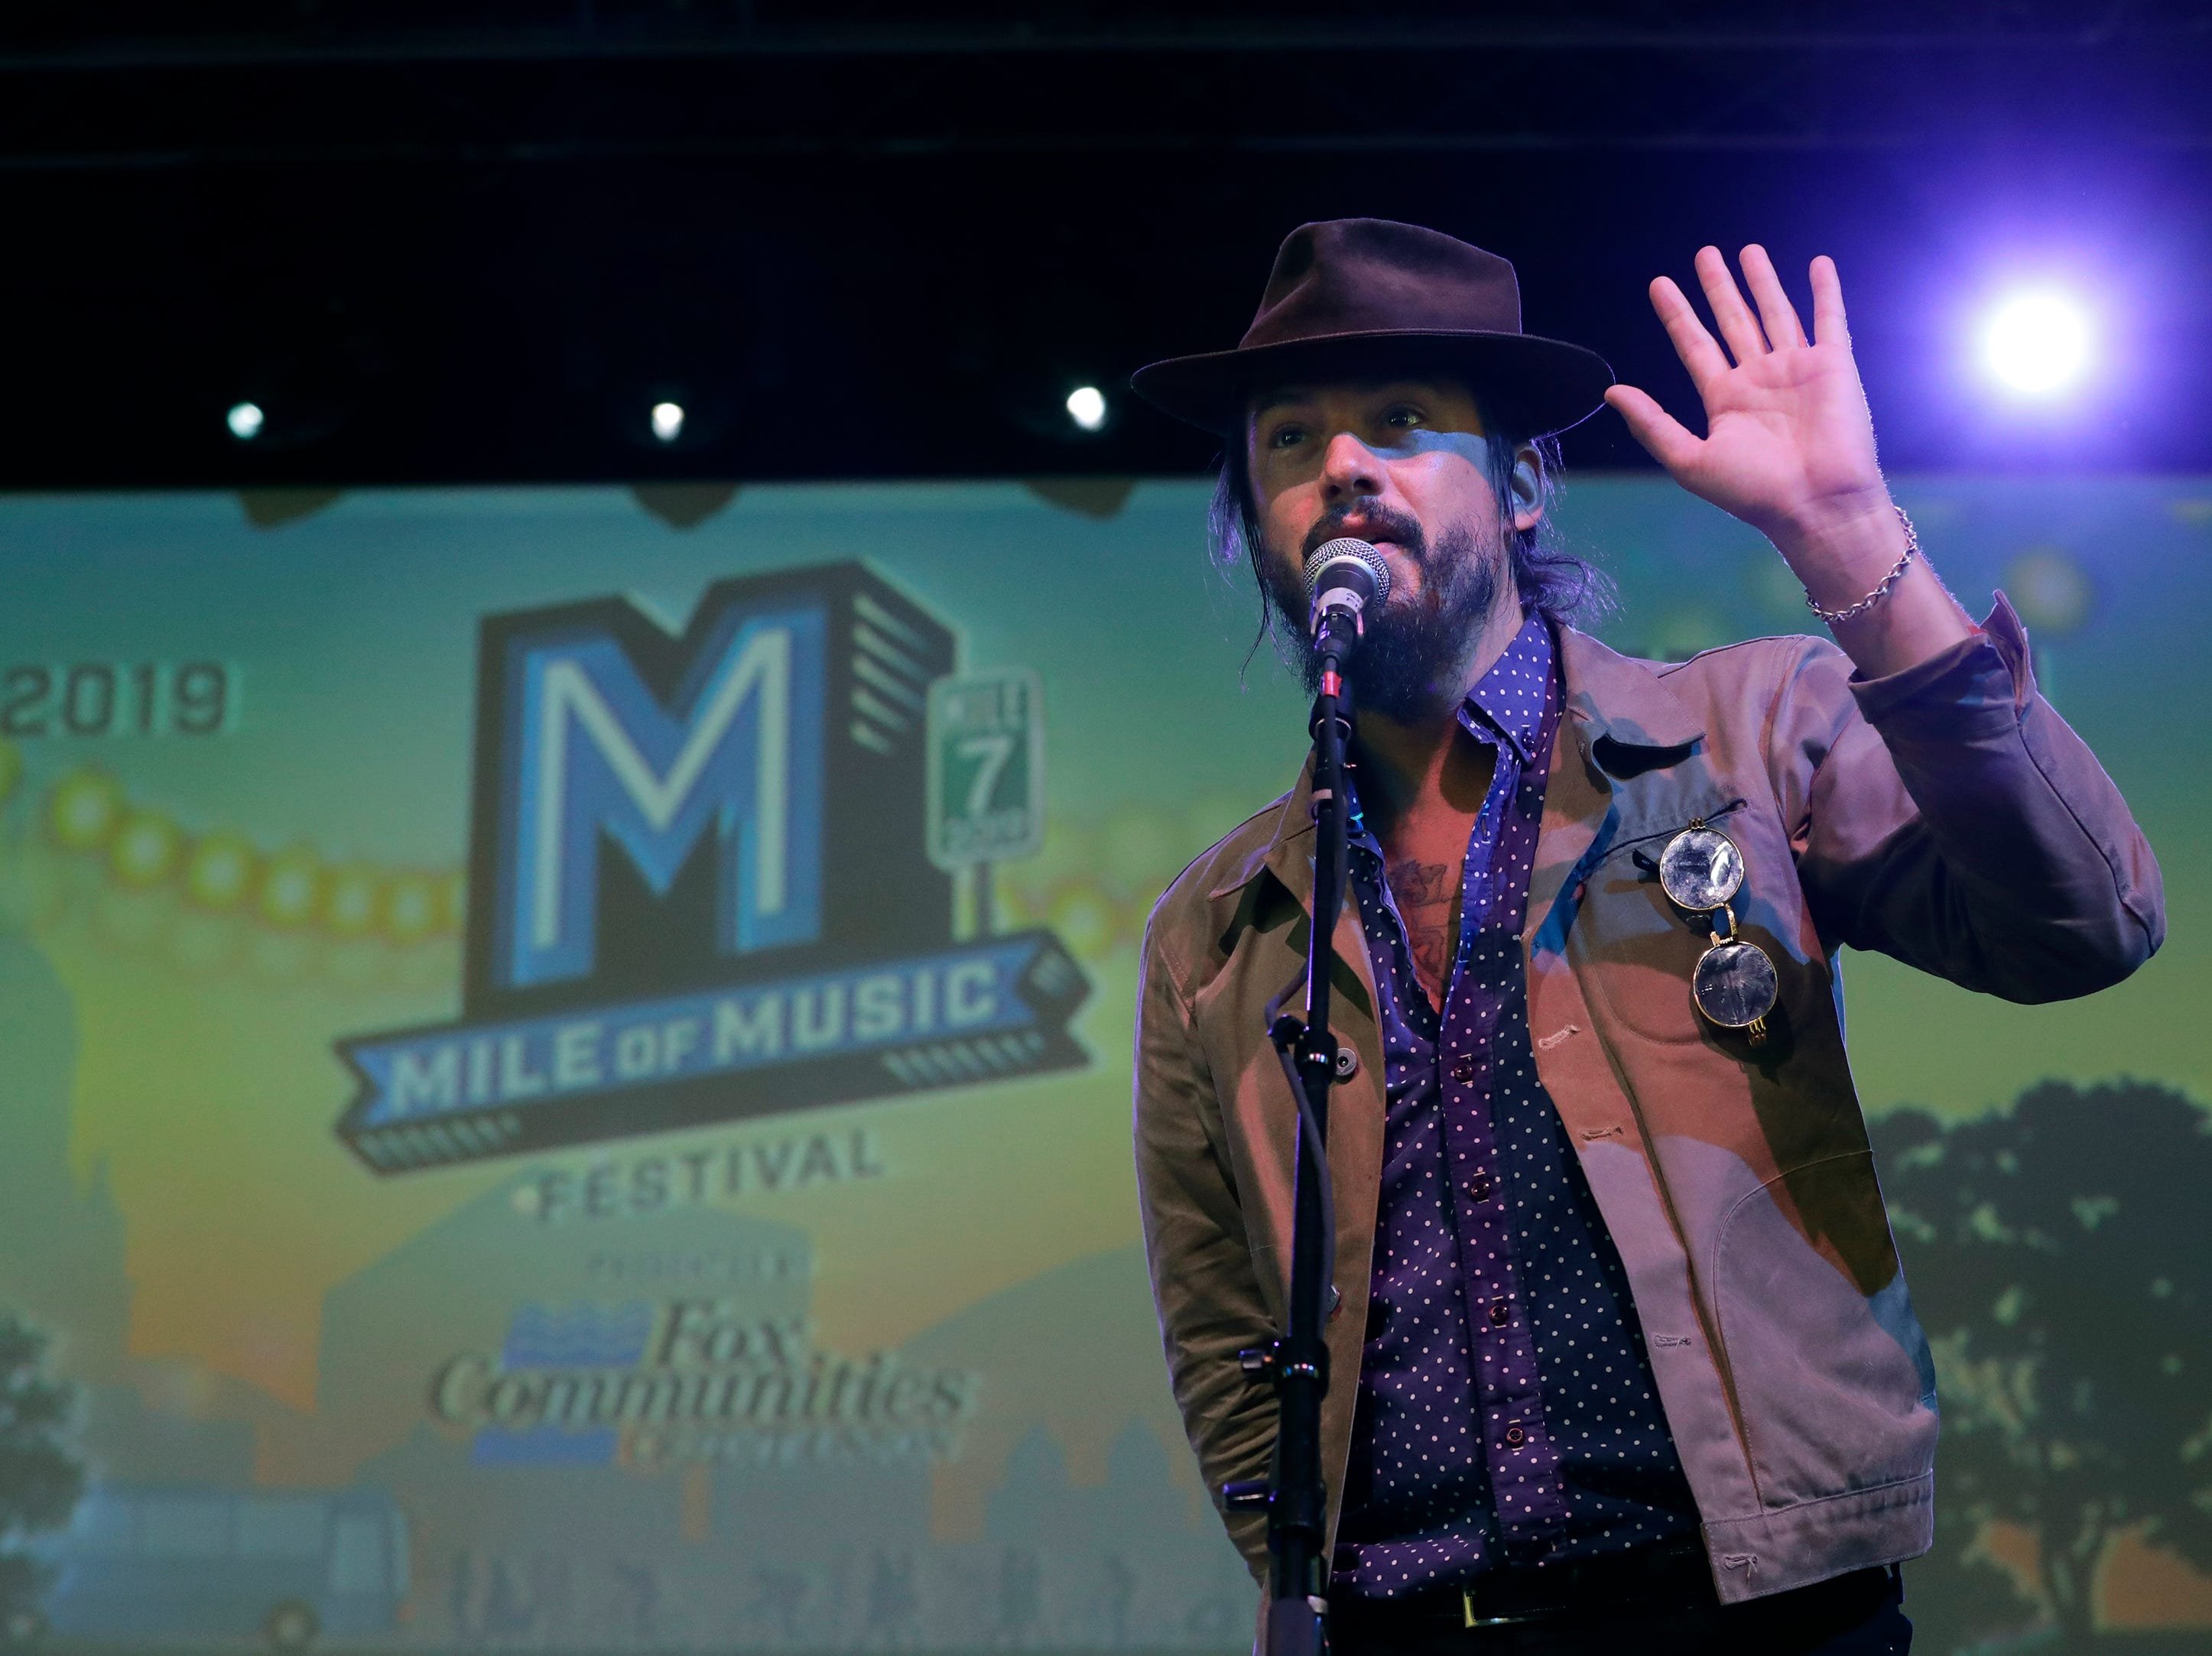 Mile of Music co-founder Cory Chisel announces the return of Jones Park as organizers, sponsors, artists and fans gather for the unveiling of plans for the seventh annual festival Thursday, April 18, 2019, at the OuterEdge Stage in Appleton, Wis. Mile 7, set for Aug. 1-4 in downtown Appleton, will feature more than 900 performances in 60-plus venues.Dan Powers/USA TODAY NETWORK-Wisconsin